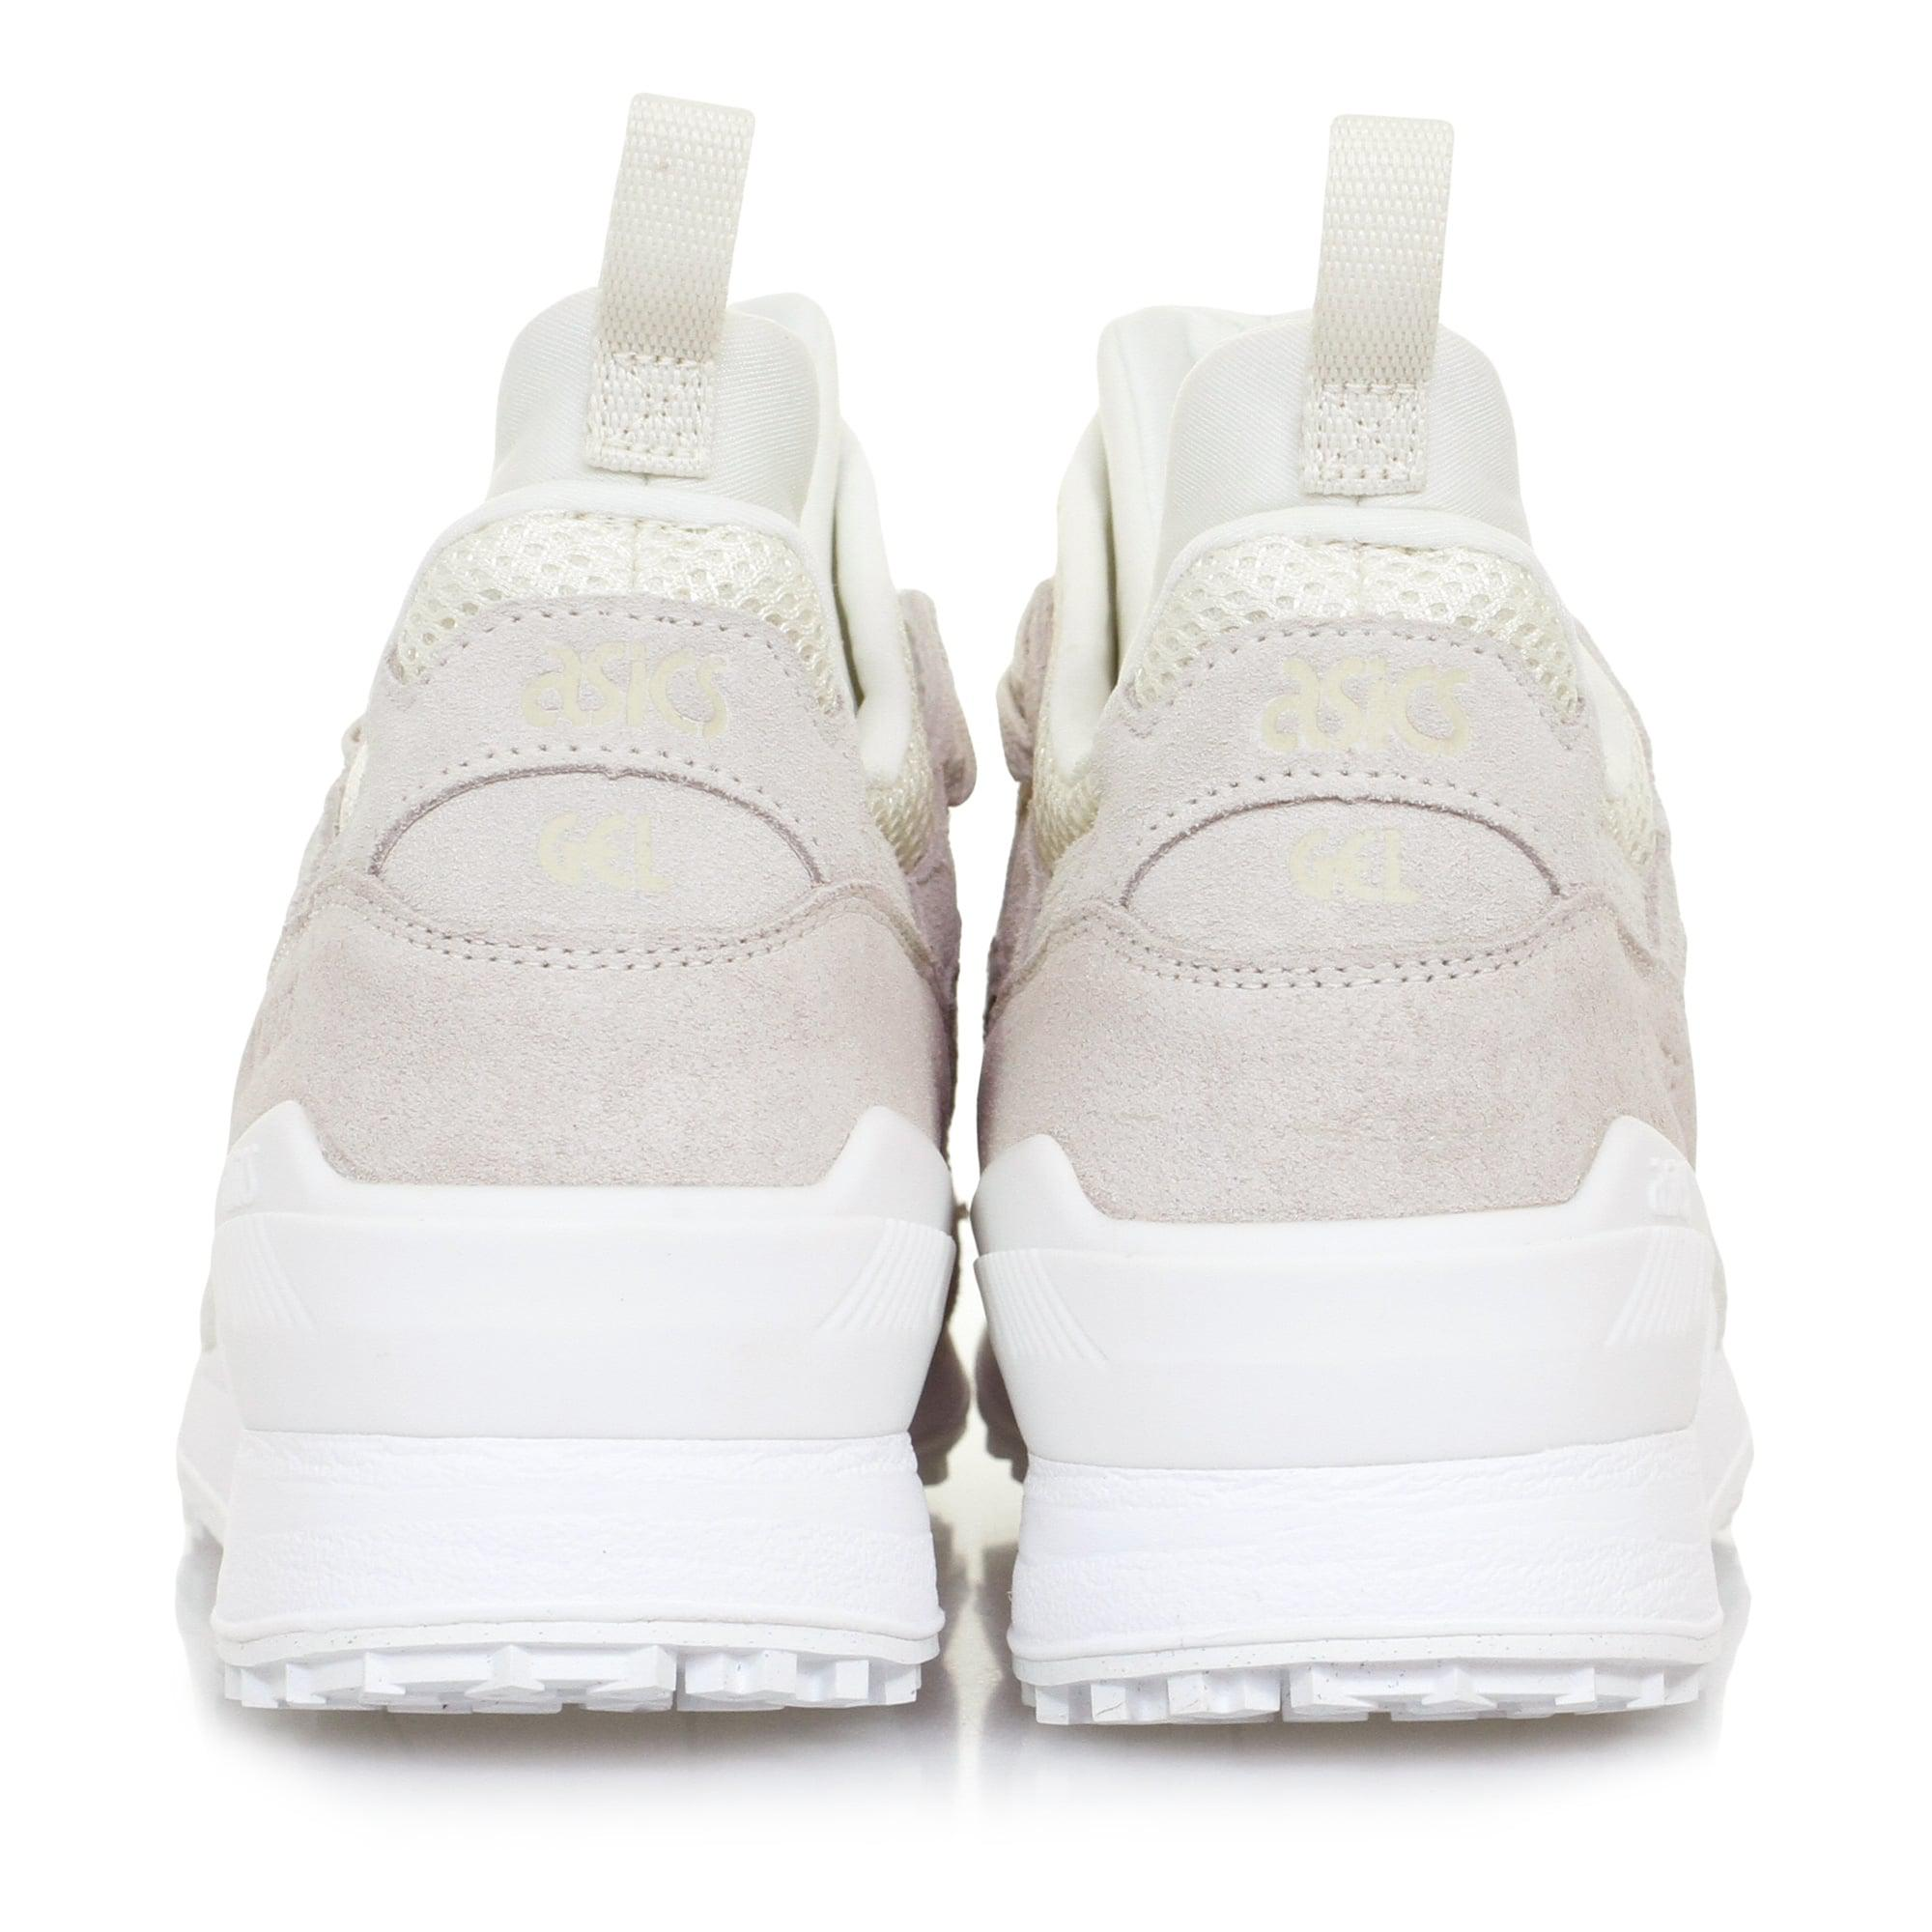 White Mt Shoes At Macy